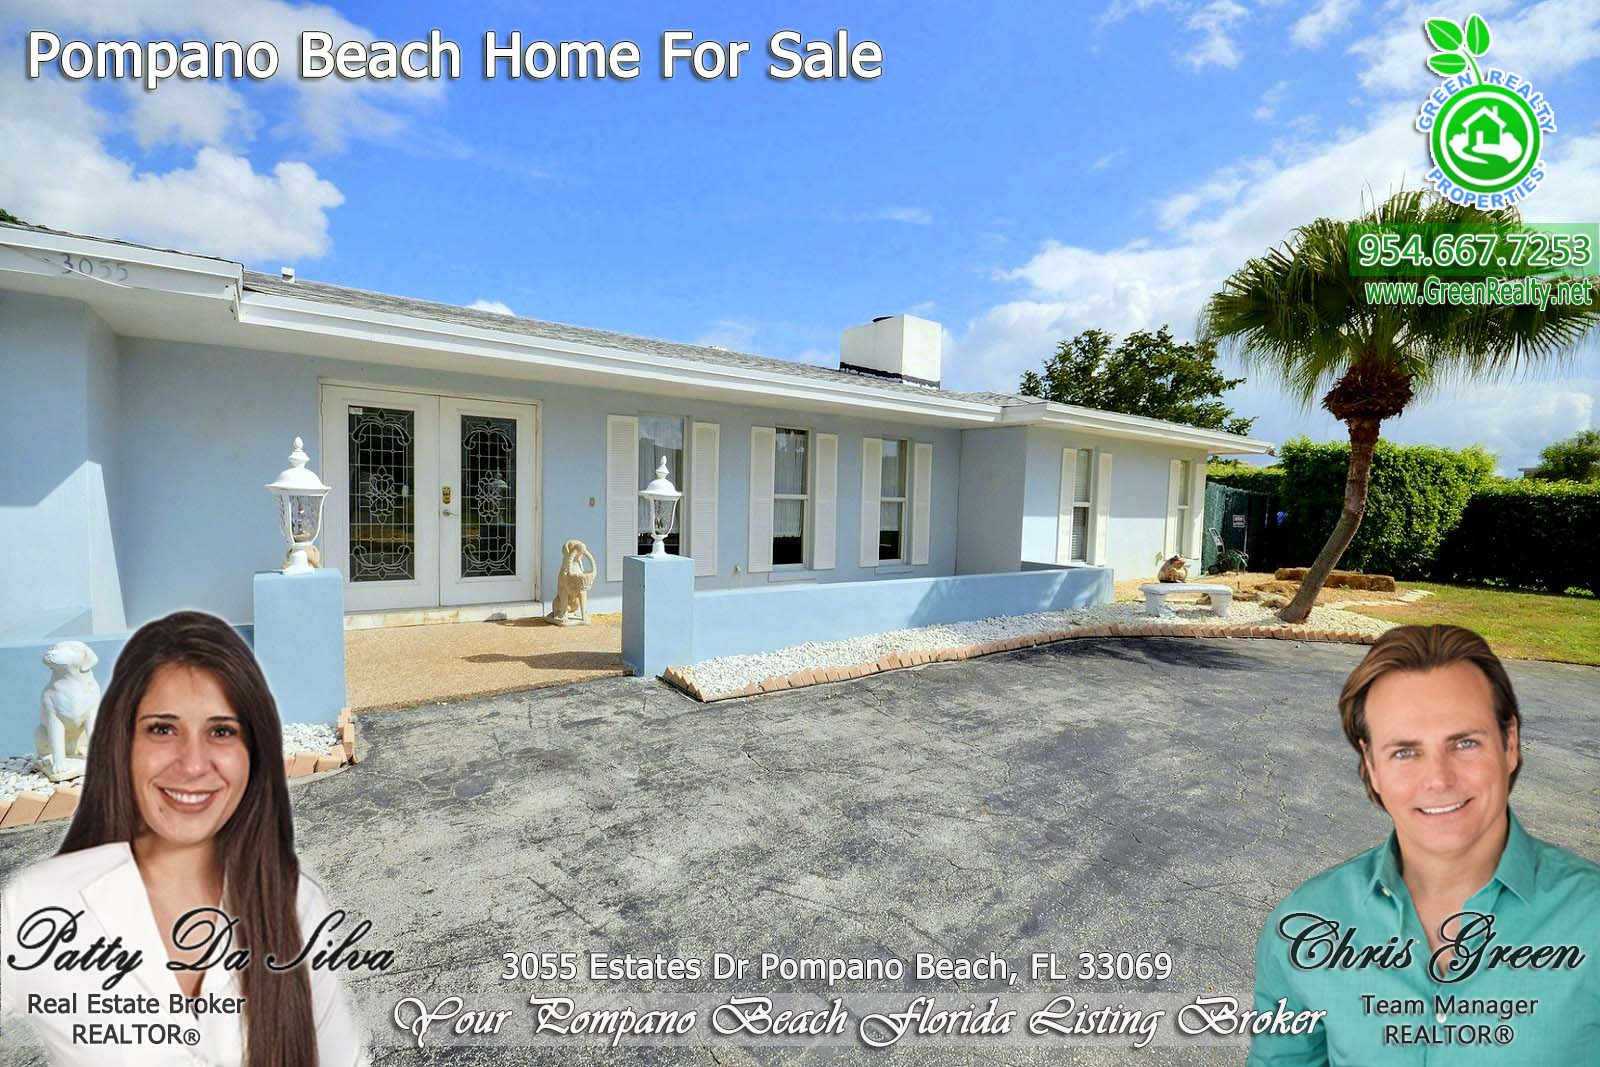 7 Homes For Sale in Pompano Beach (8)